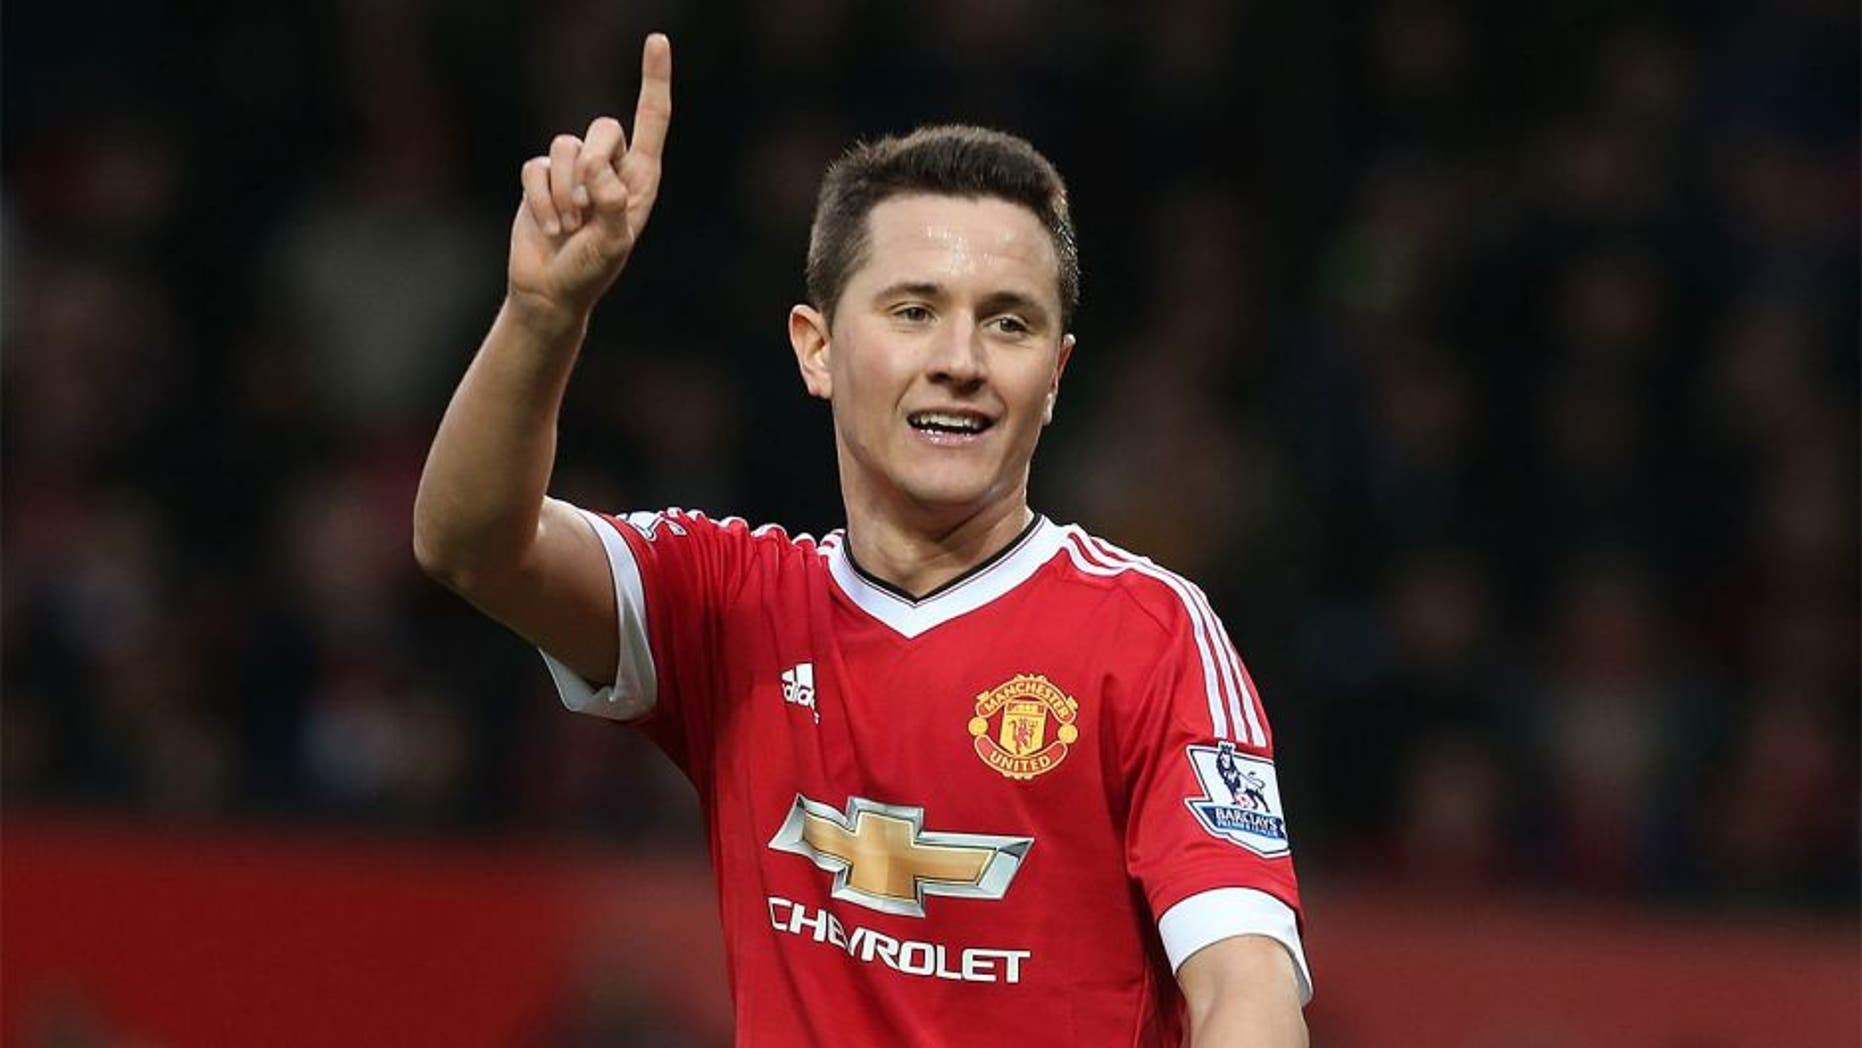 MANCHESTER, ENGLAND - JANUARY 23: Ander Herrera of Manchester United shows his disagreement with a refereeing decision during the Barclays Premier League match between Manchester United and Southampton at Old Trafford on January 23, 2016 in Manchester, England. (Photo by Matthew Peters/Man Utd via Getty Images)